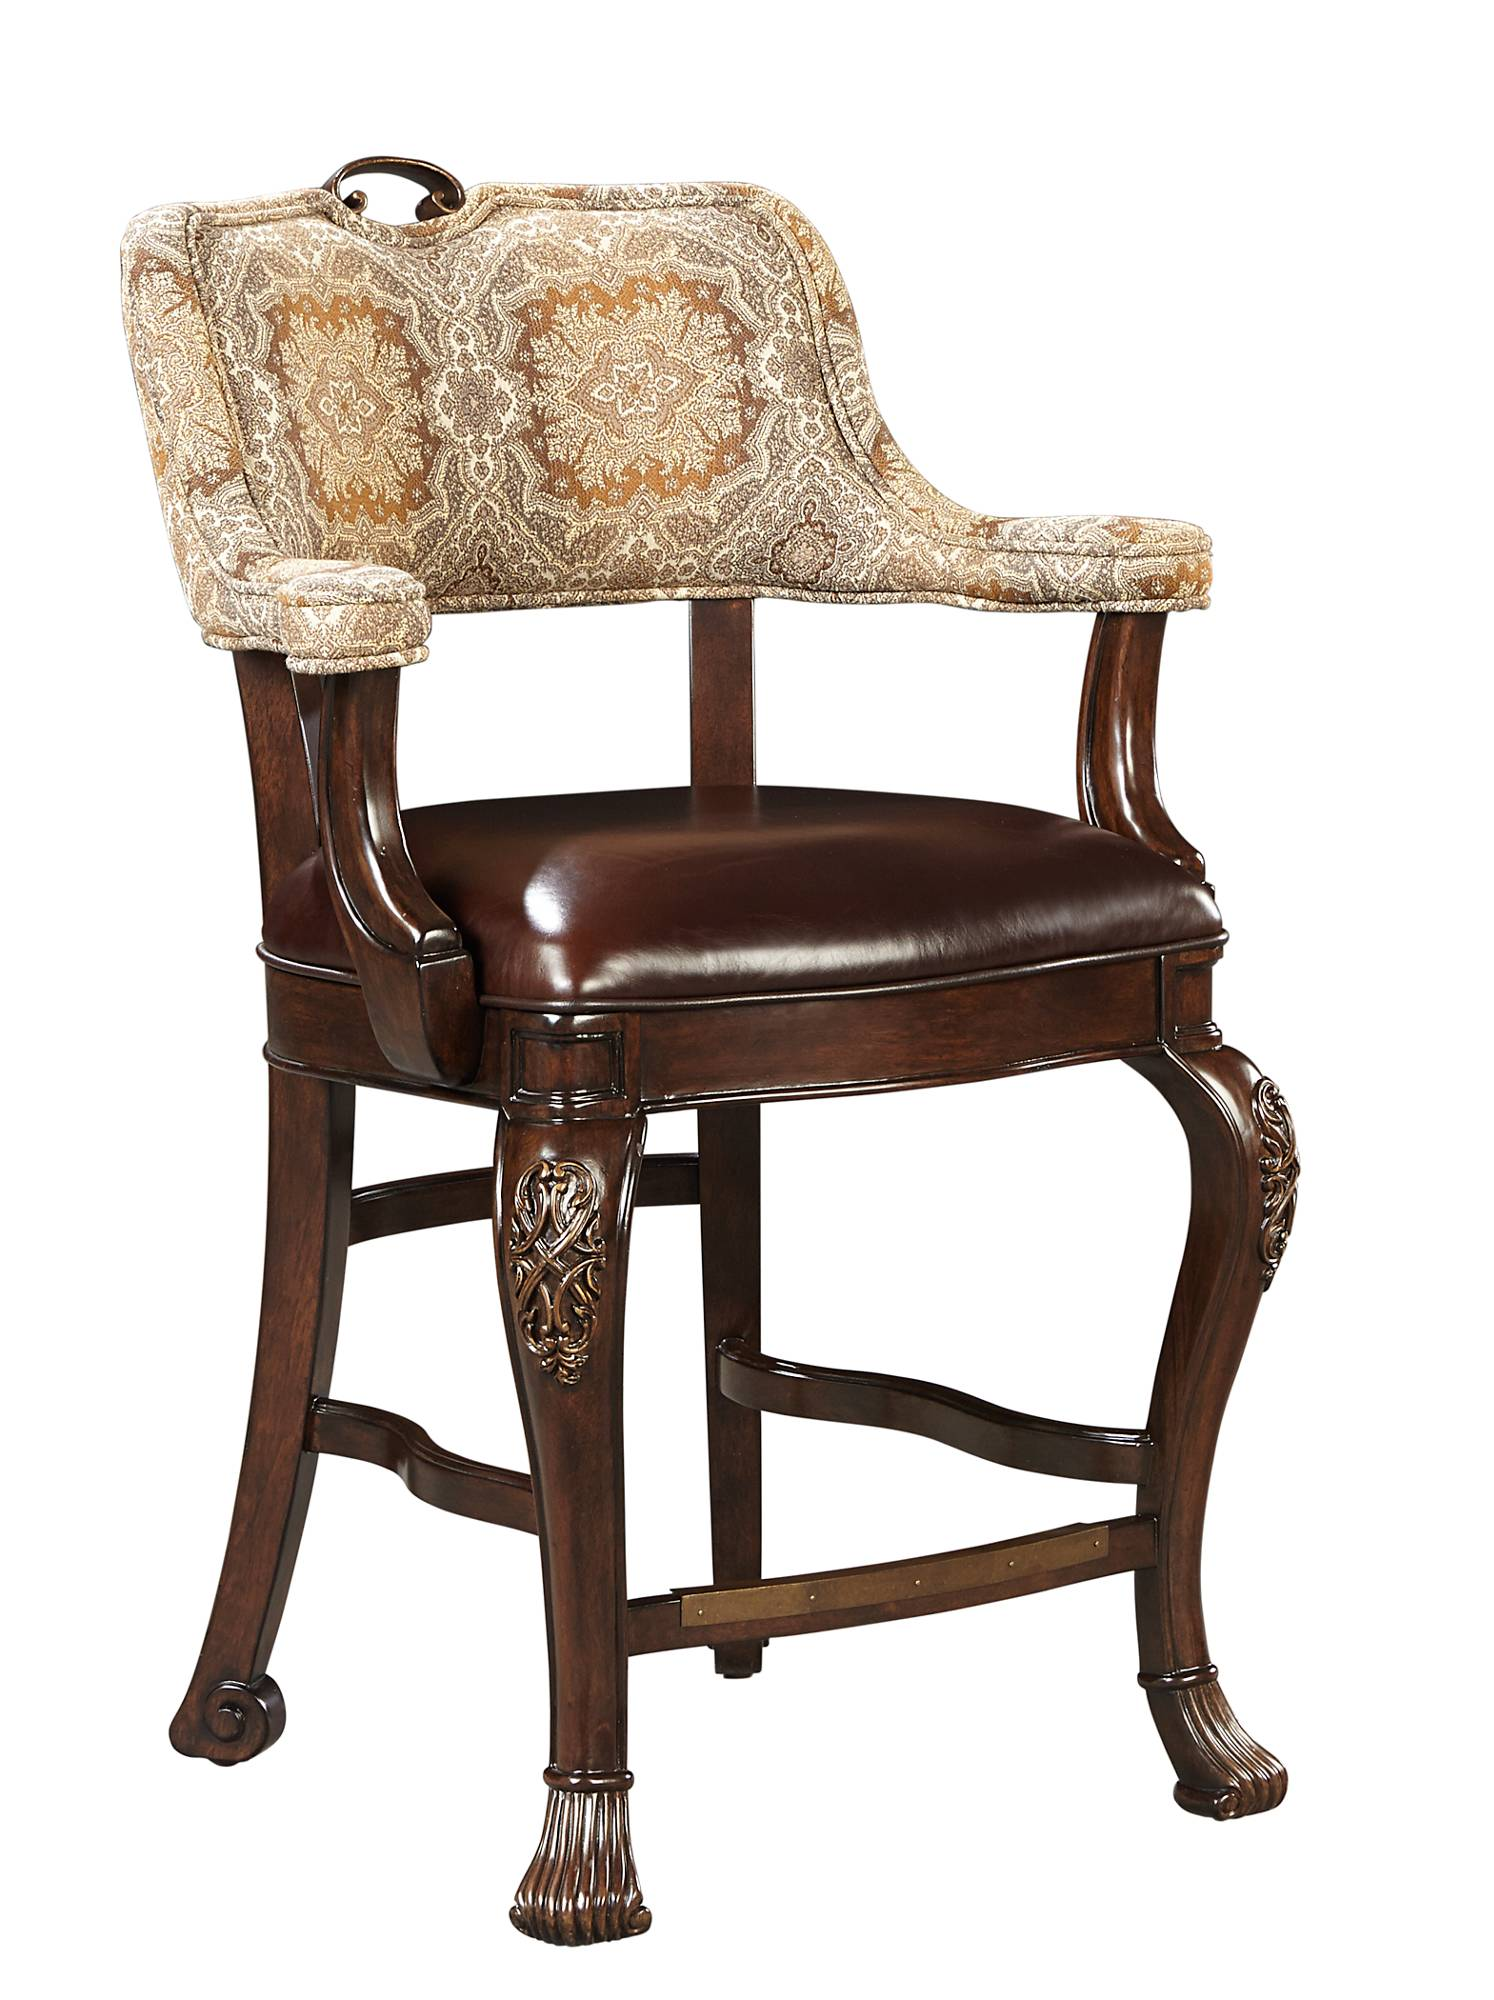 Stanley Furniture Casa D'Onore Counter Stool - Item Number: 443-11-72